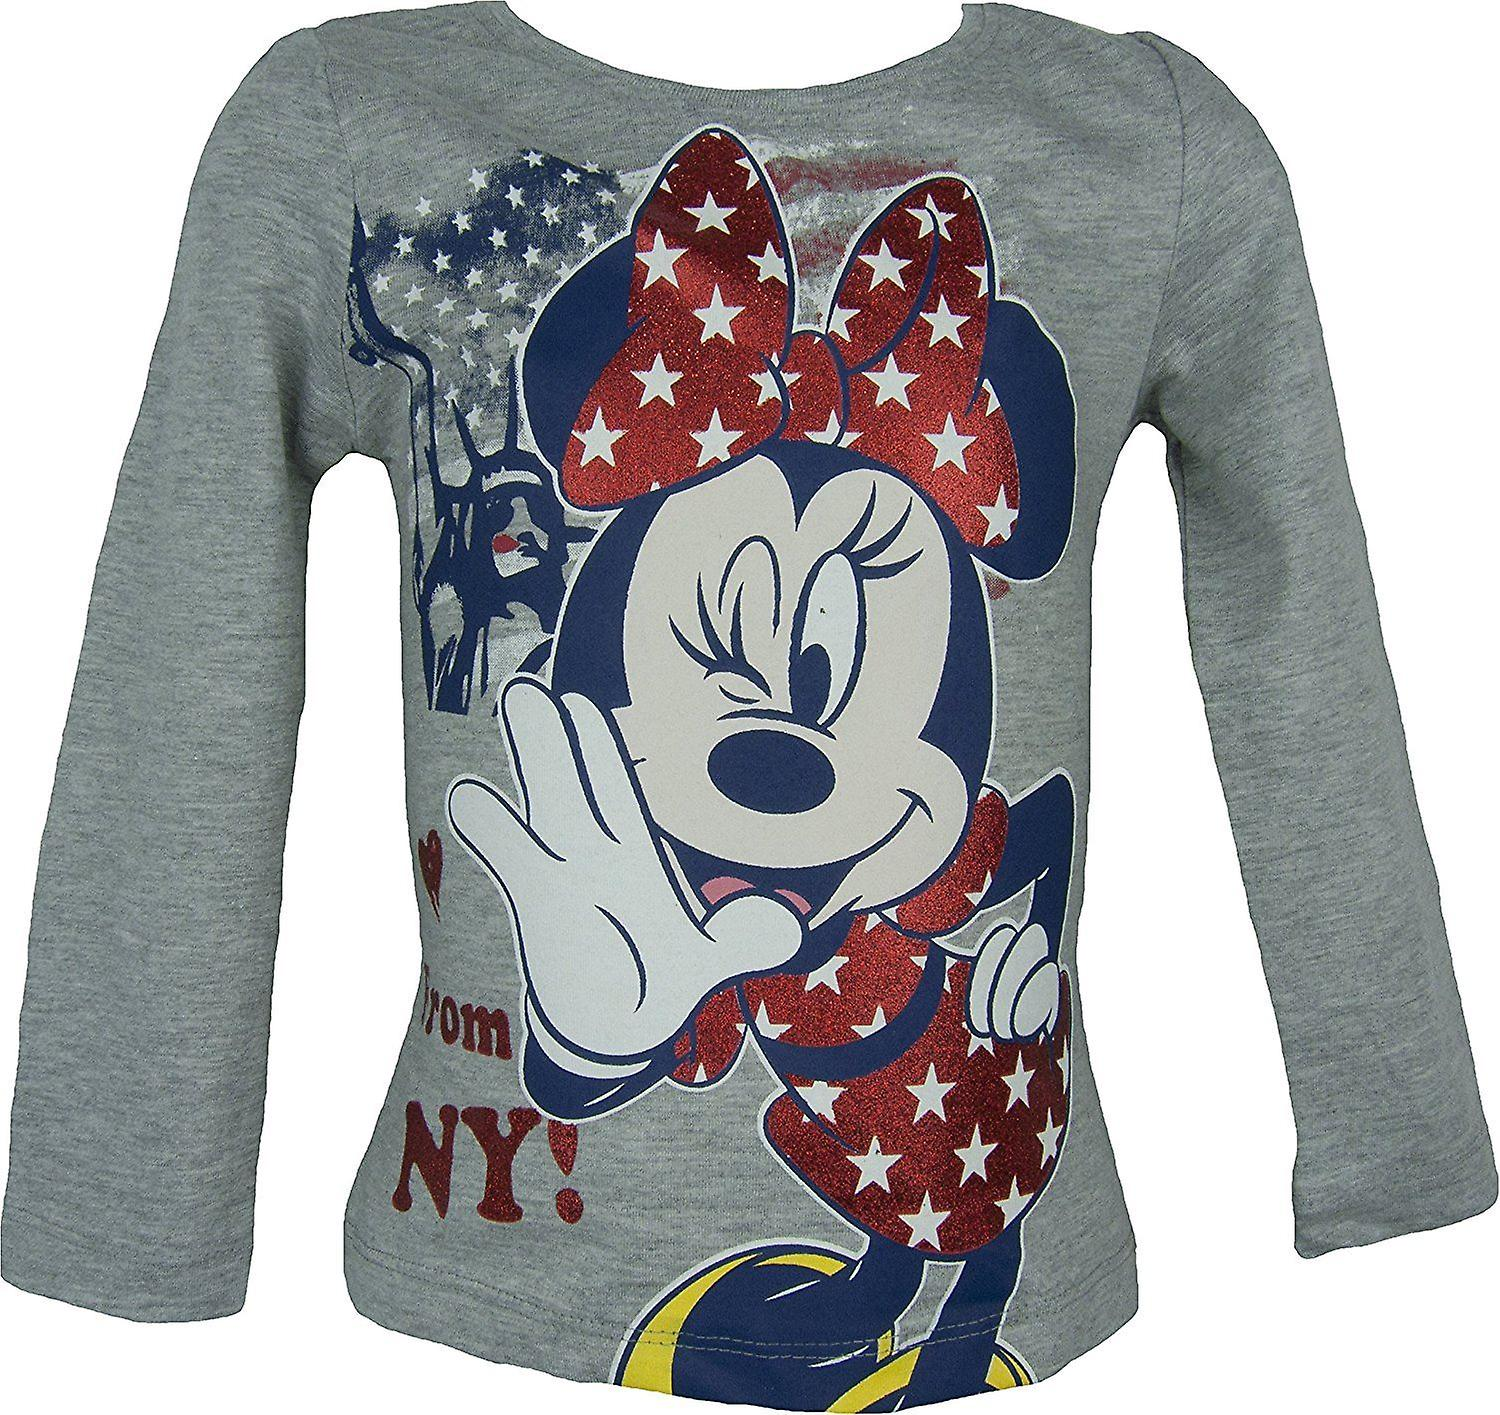 dcdfbbc6062 Disney Minnie Mouse Long Sleeve Top NH1368